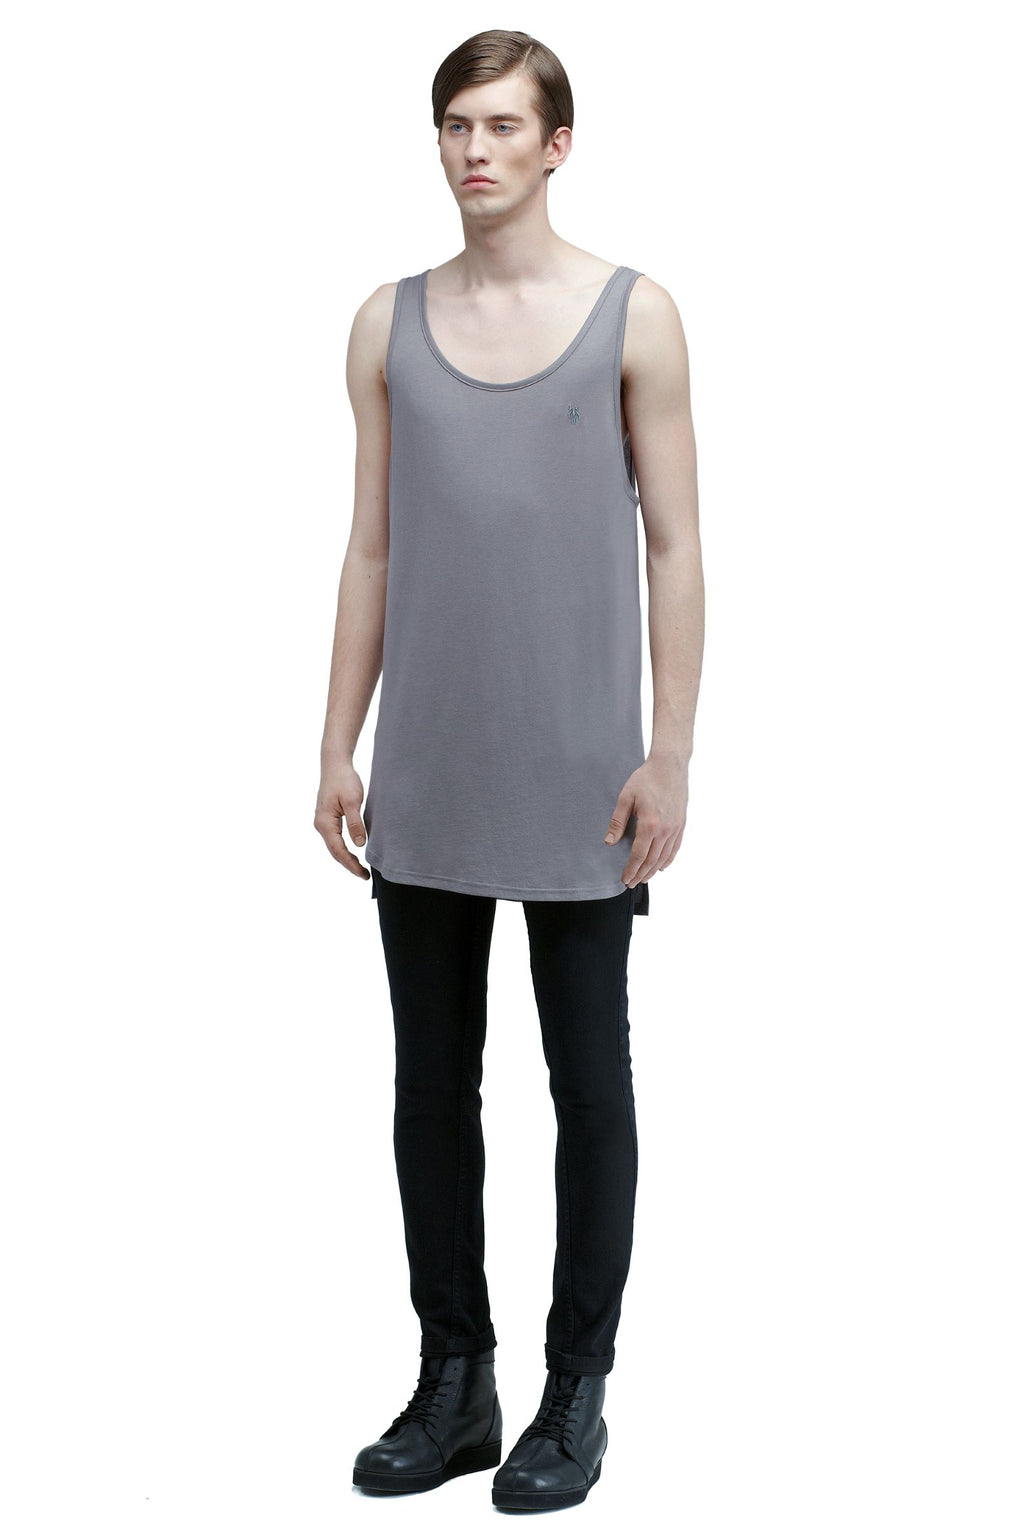 UNIFORM Tank Top 02 Grey - One Wolf